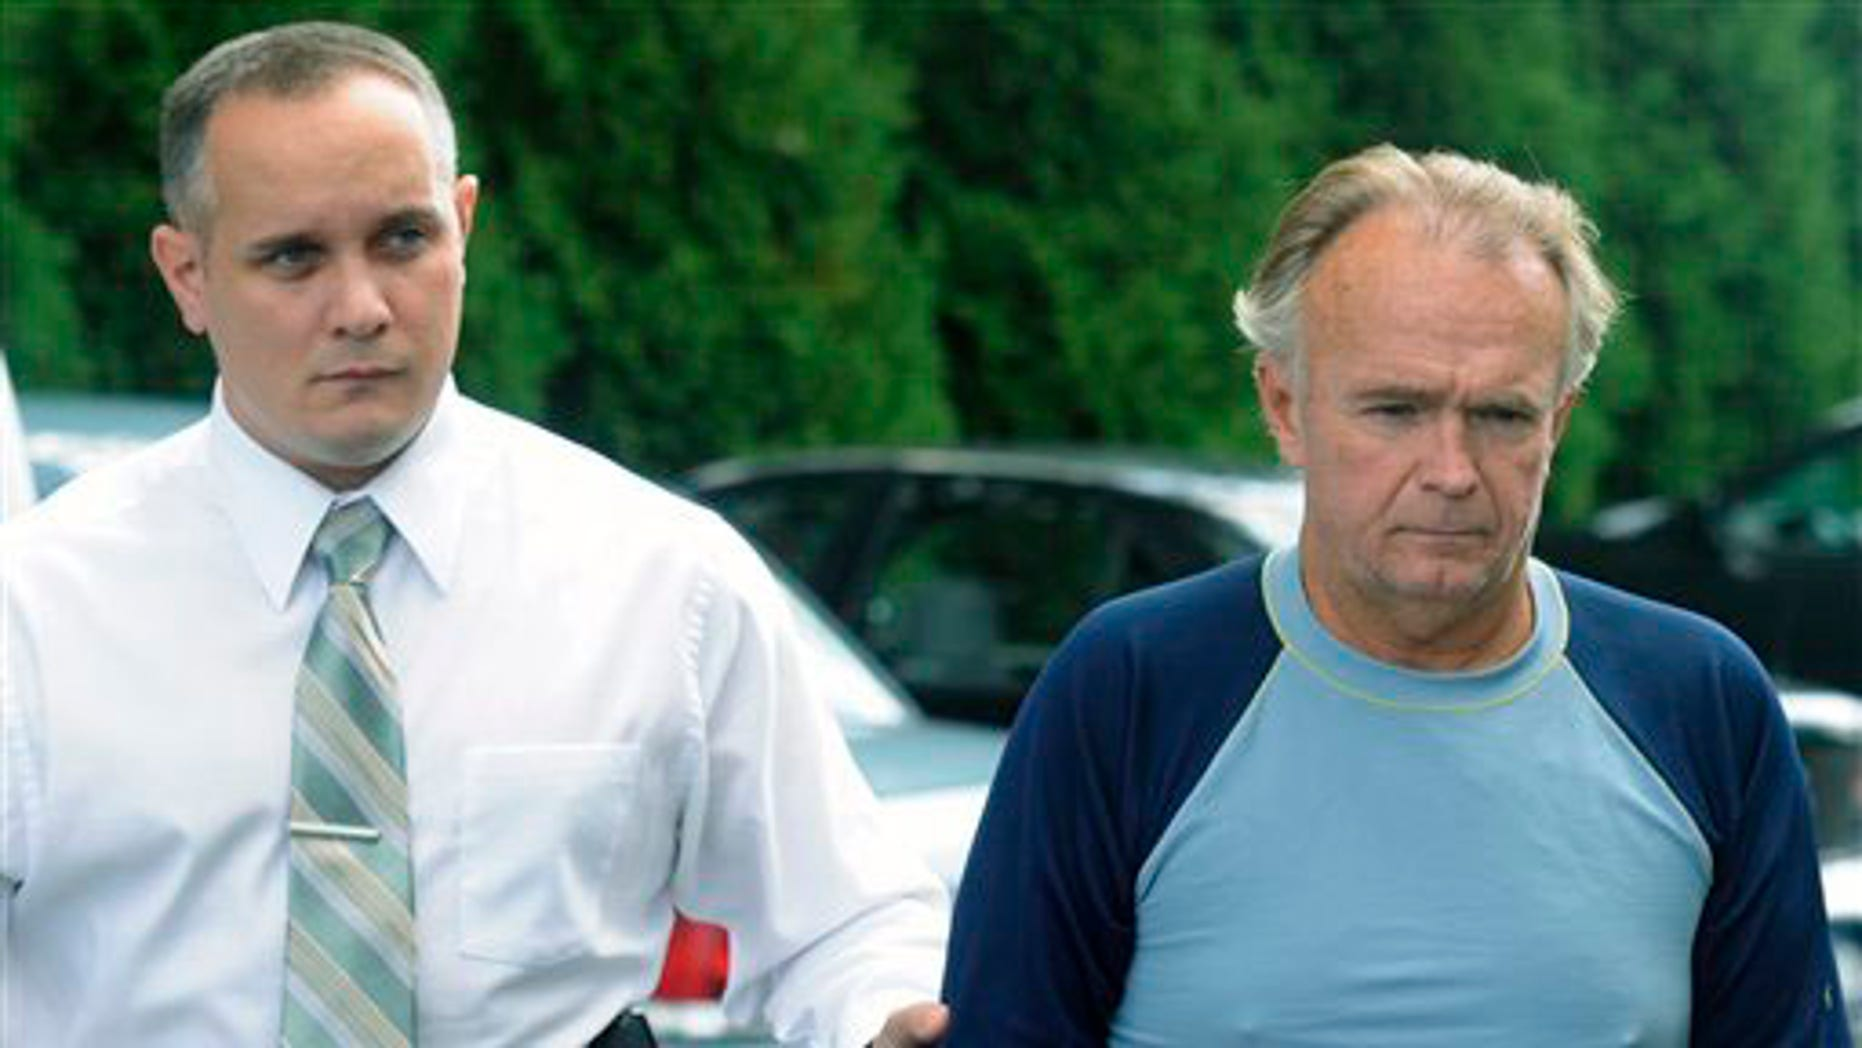 The Rev. Arthur Burton Schirmer, 62, right, is led into district court by Pennsylvania State Trooper Bill Skotleski in Tannersville, Pa., on Monday, Sept. 13, 2010. Schirmer is accused of killing his wife and staging a car accident in July 2008 to cover up the murder.